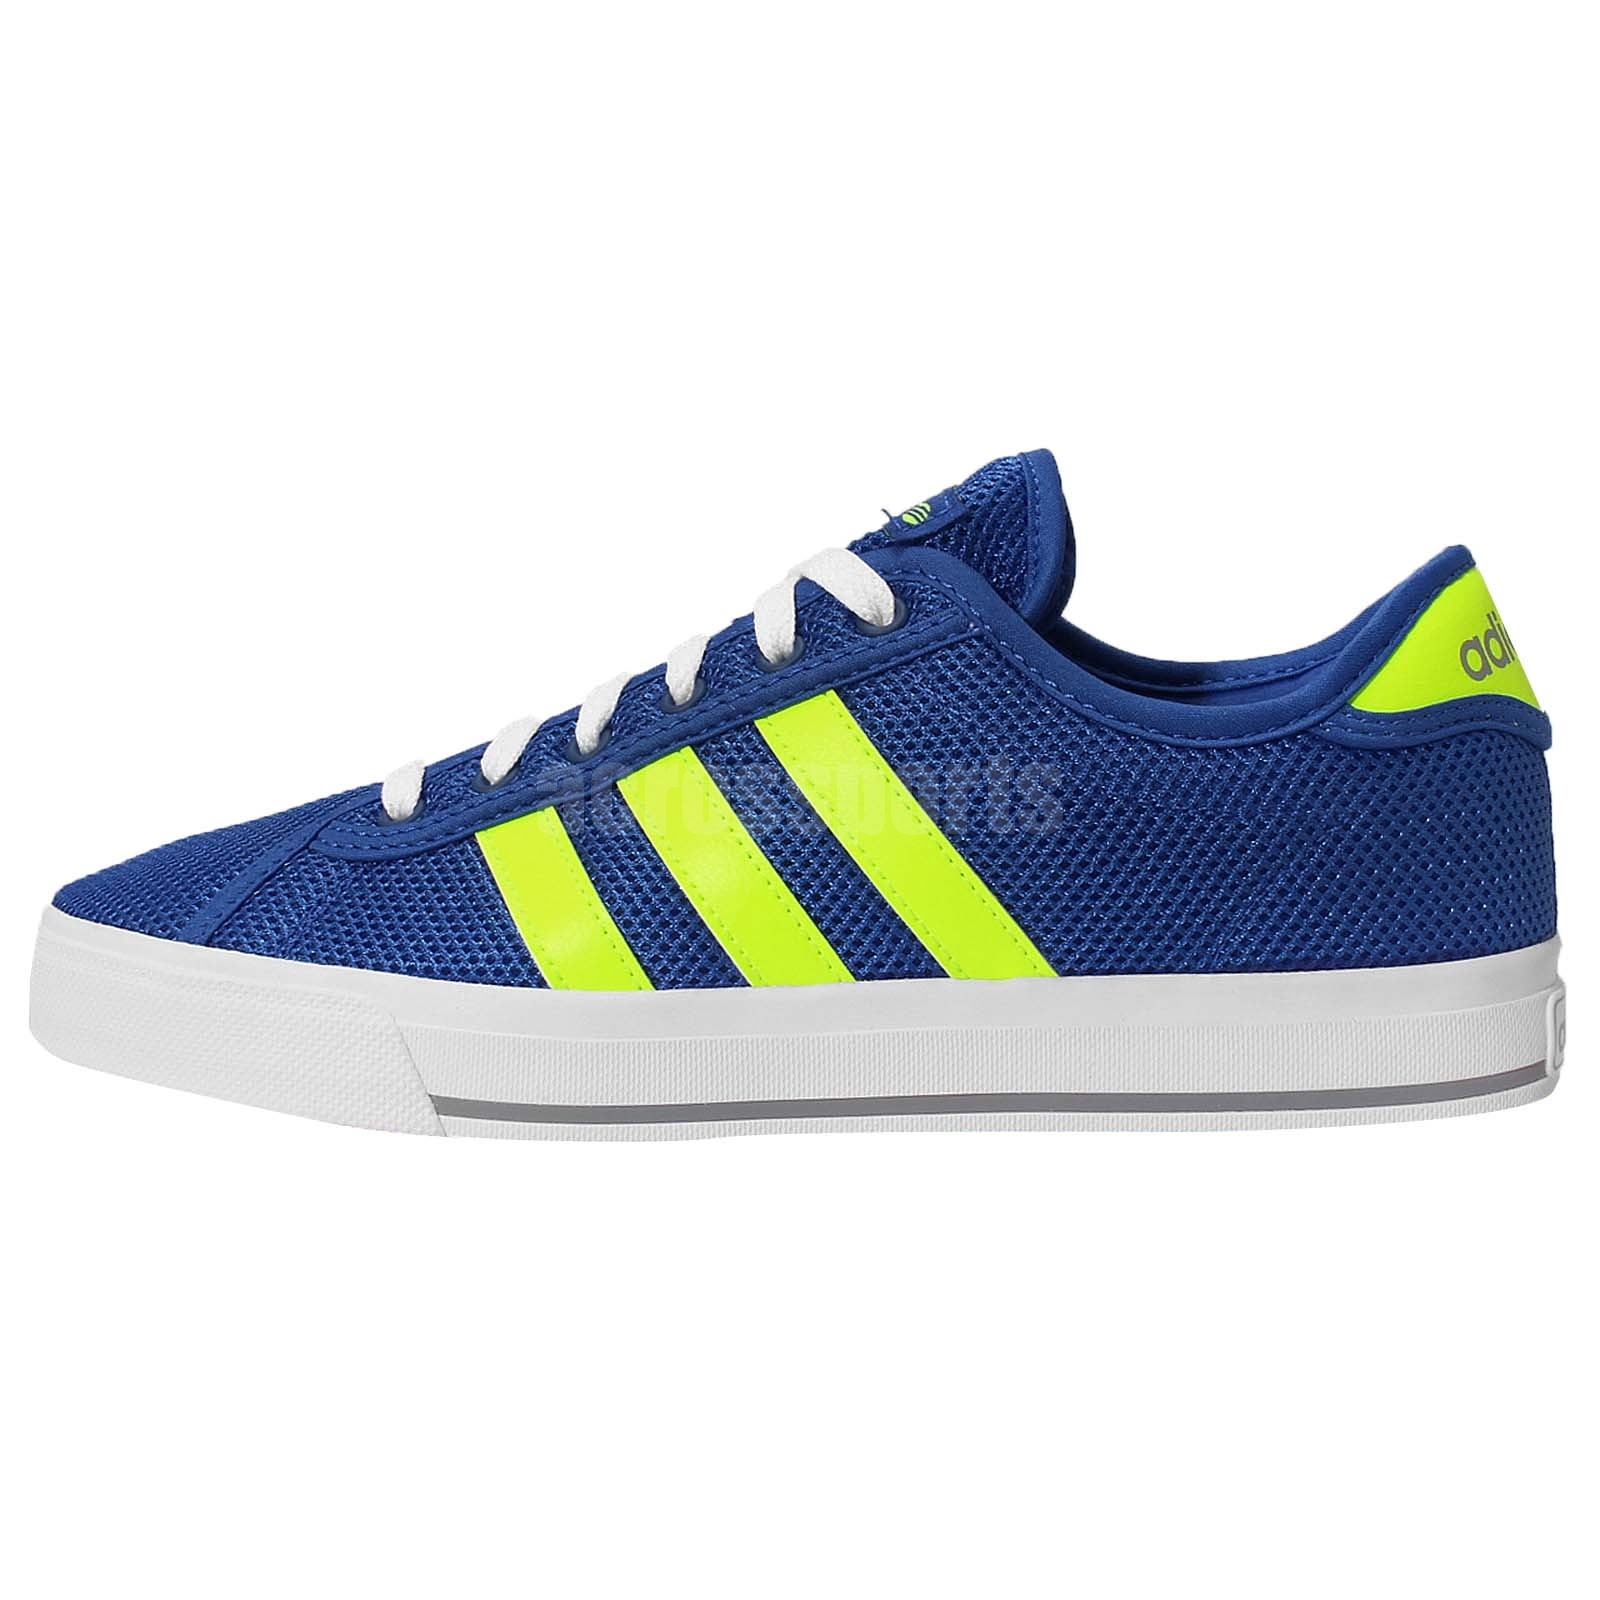 adidas neo label daily bind blue yellow white mens fashion. Black Bedroom Furniture Sets. Home Design Ideas